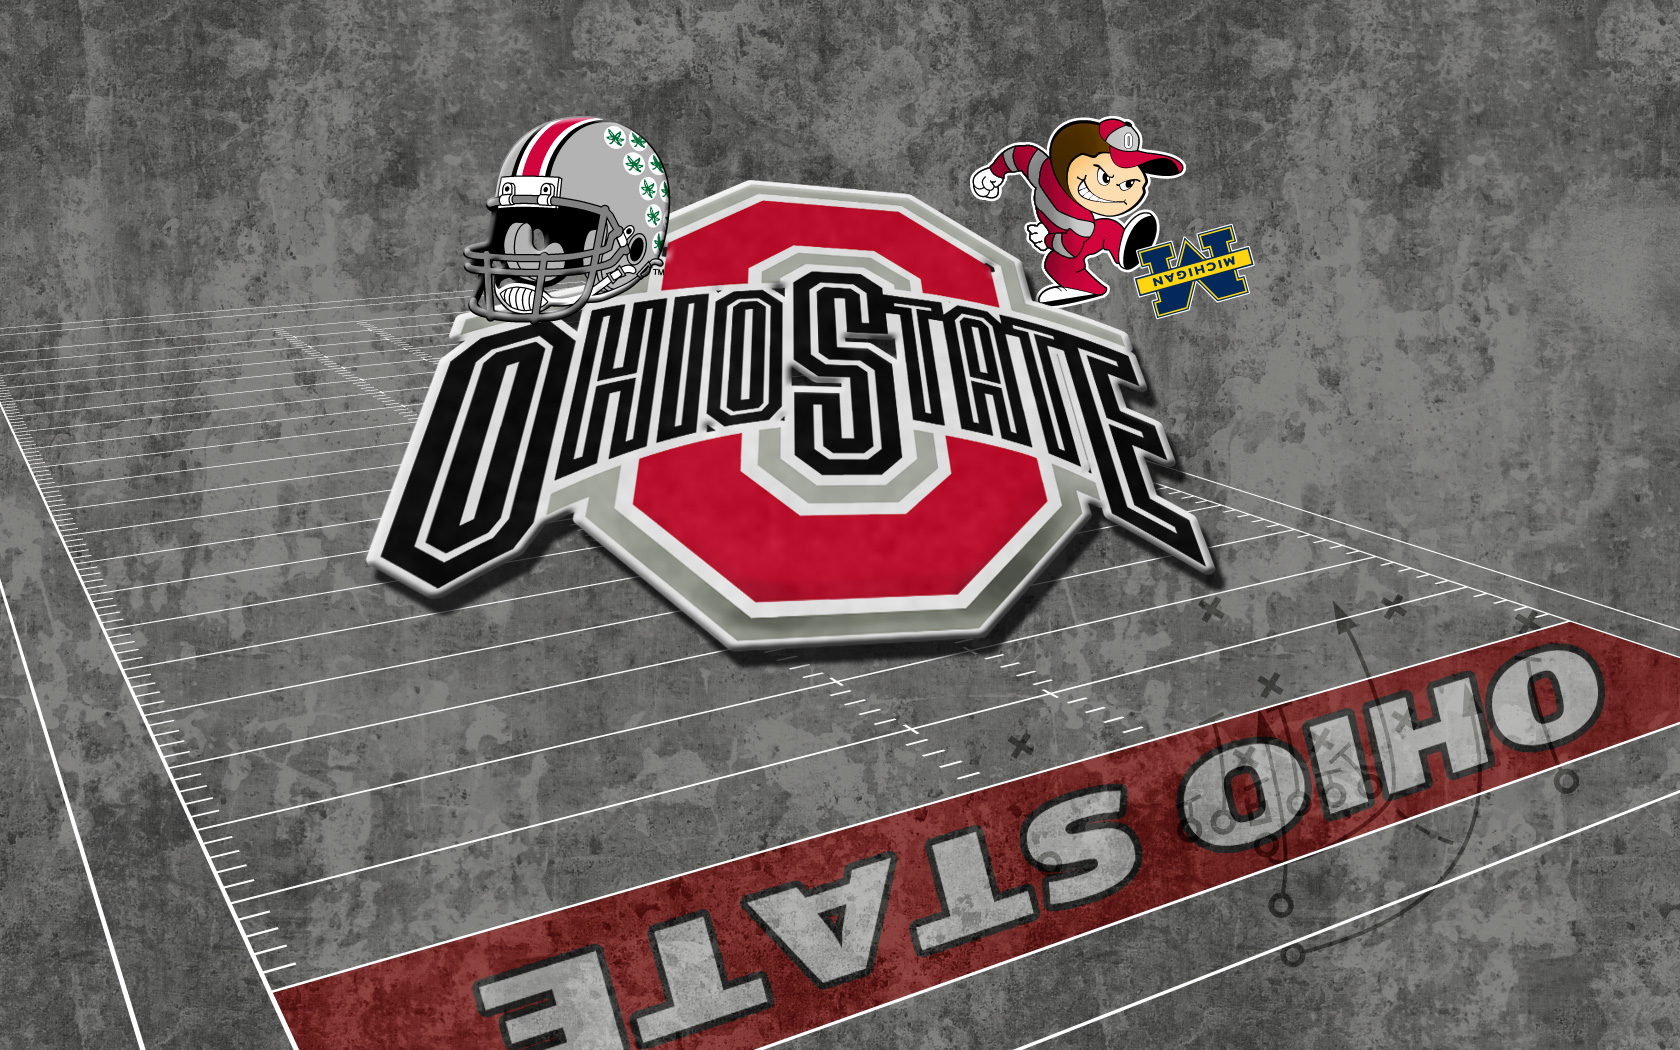 Ohio State Buckeyes Wallpaper Collection Sports Geekery 1680x1050